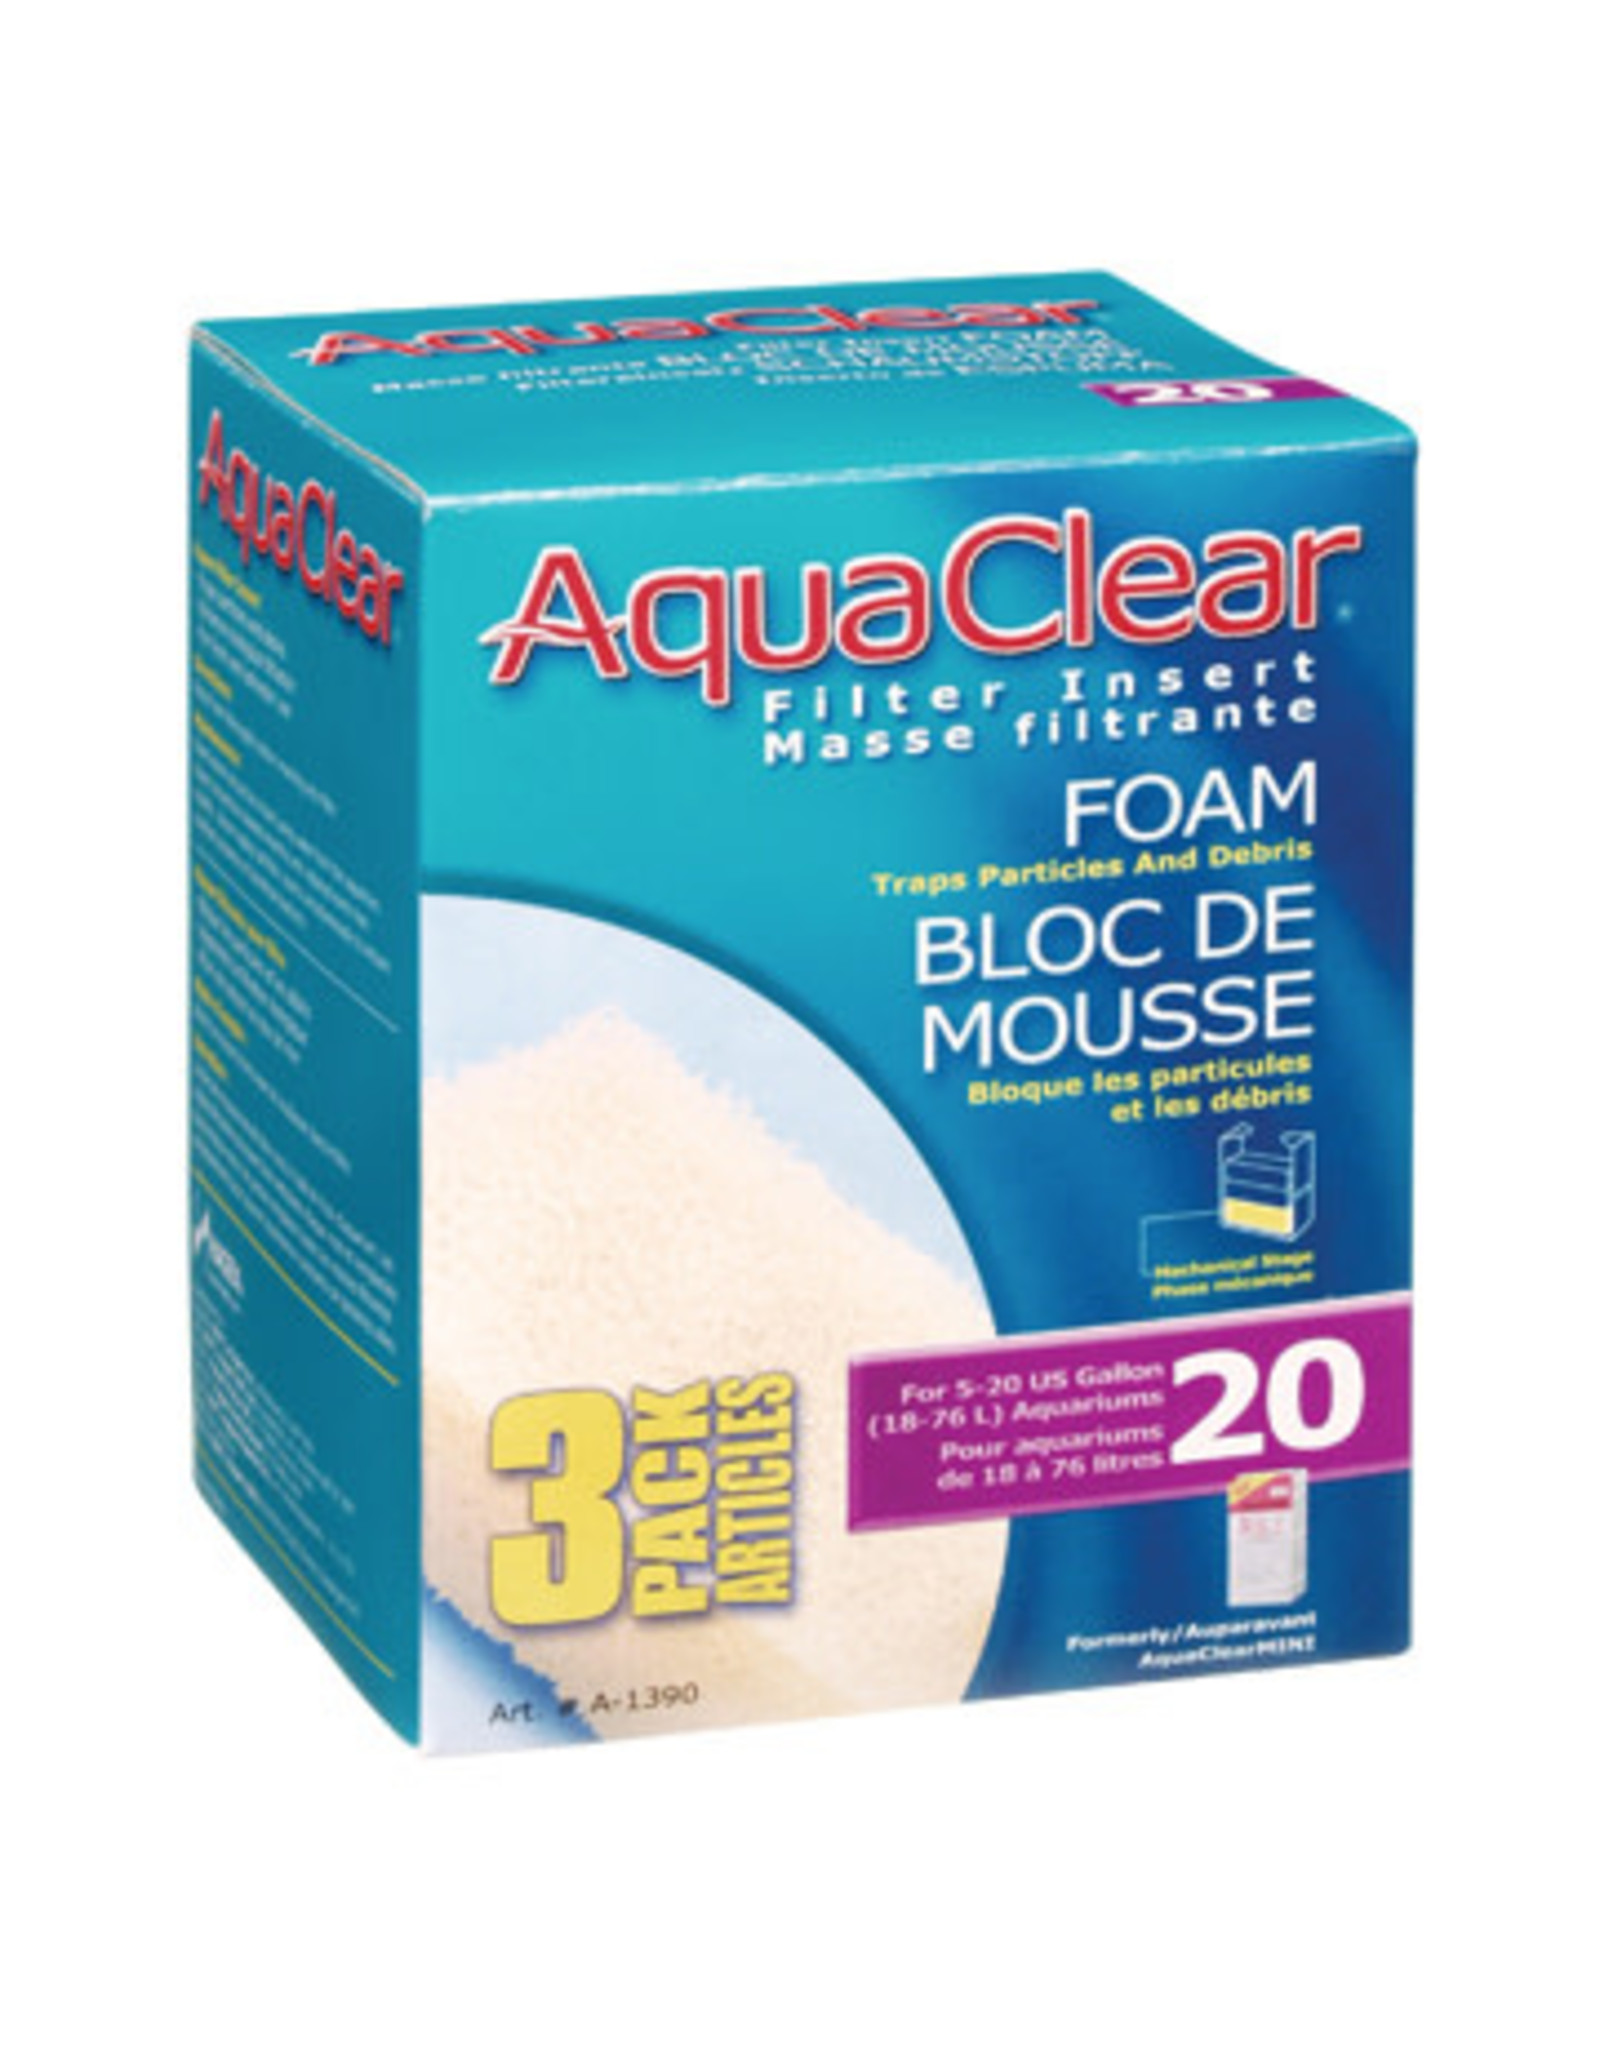 AquaClear AquaClear 20 Foam Filter insert 3 Pack